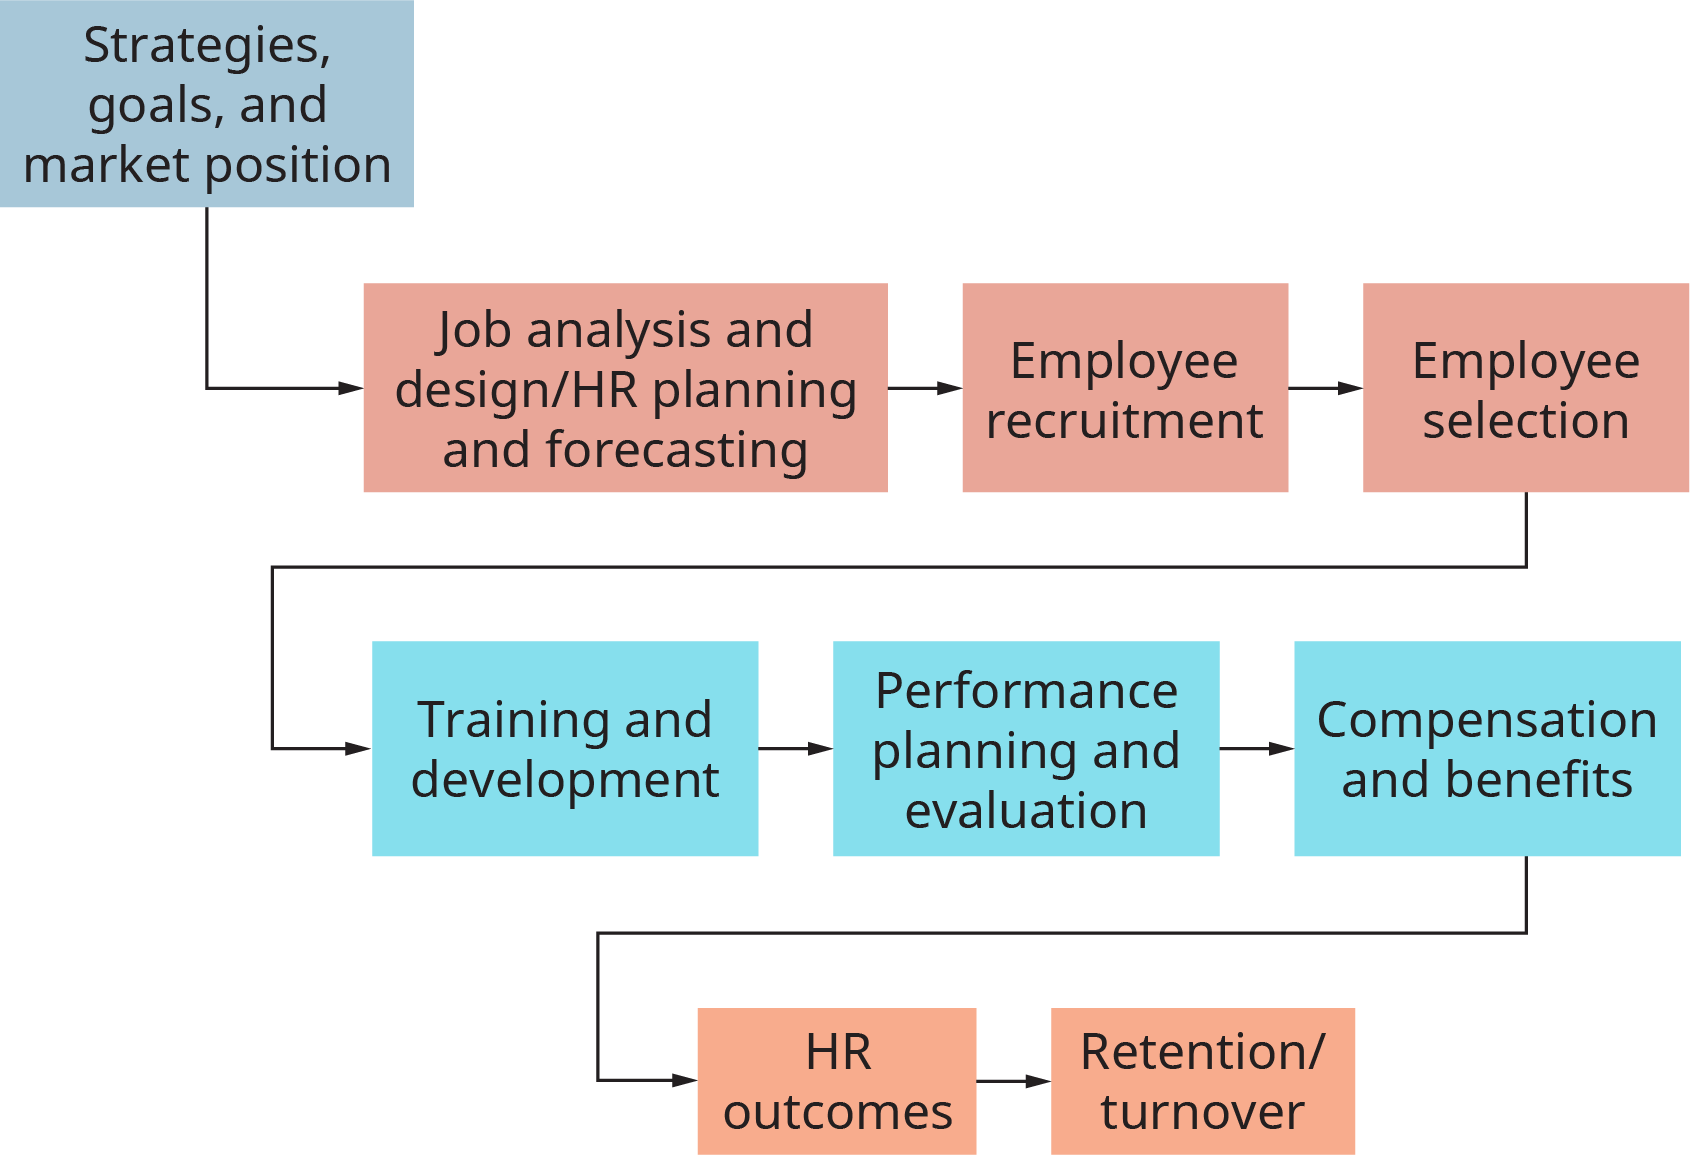 The chart starts with a box labeled strategies, goals, and market position. This flows into a box labeled job analysis and design slash h r planning and forecasting. This flows into employee recruitment. This flows into employee selection. This flows into training and development. This flows into performance planning and evaluation. This flows into compensation and benefits. This flows into h r outcomes. This flows into retention slash turnover, which is the last box.